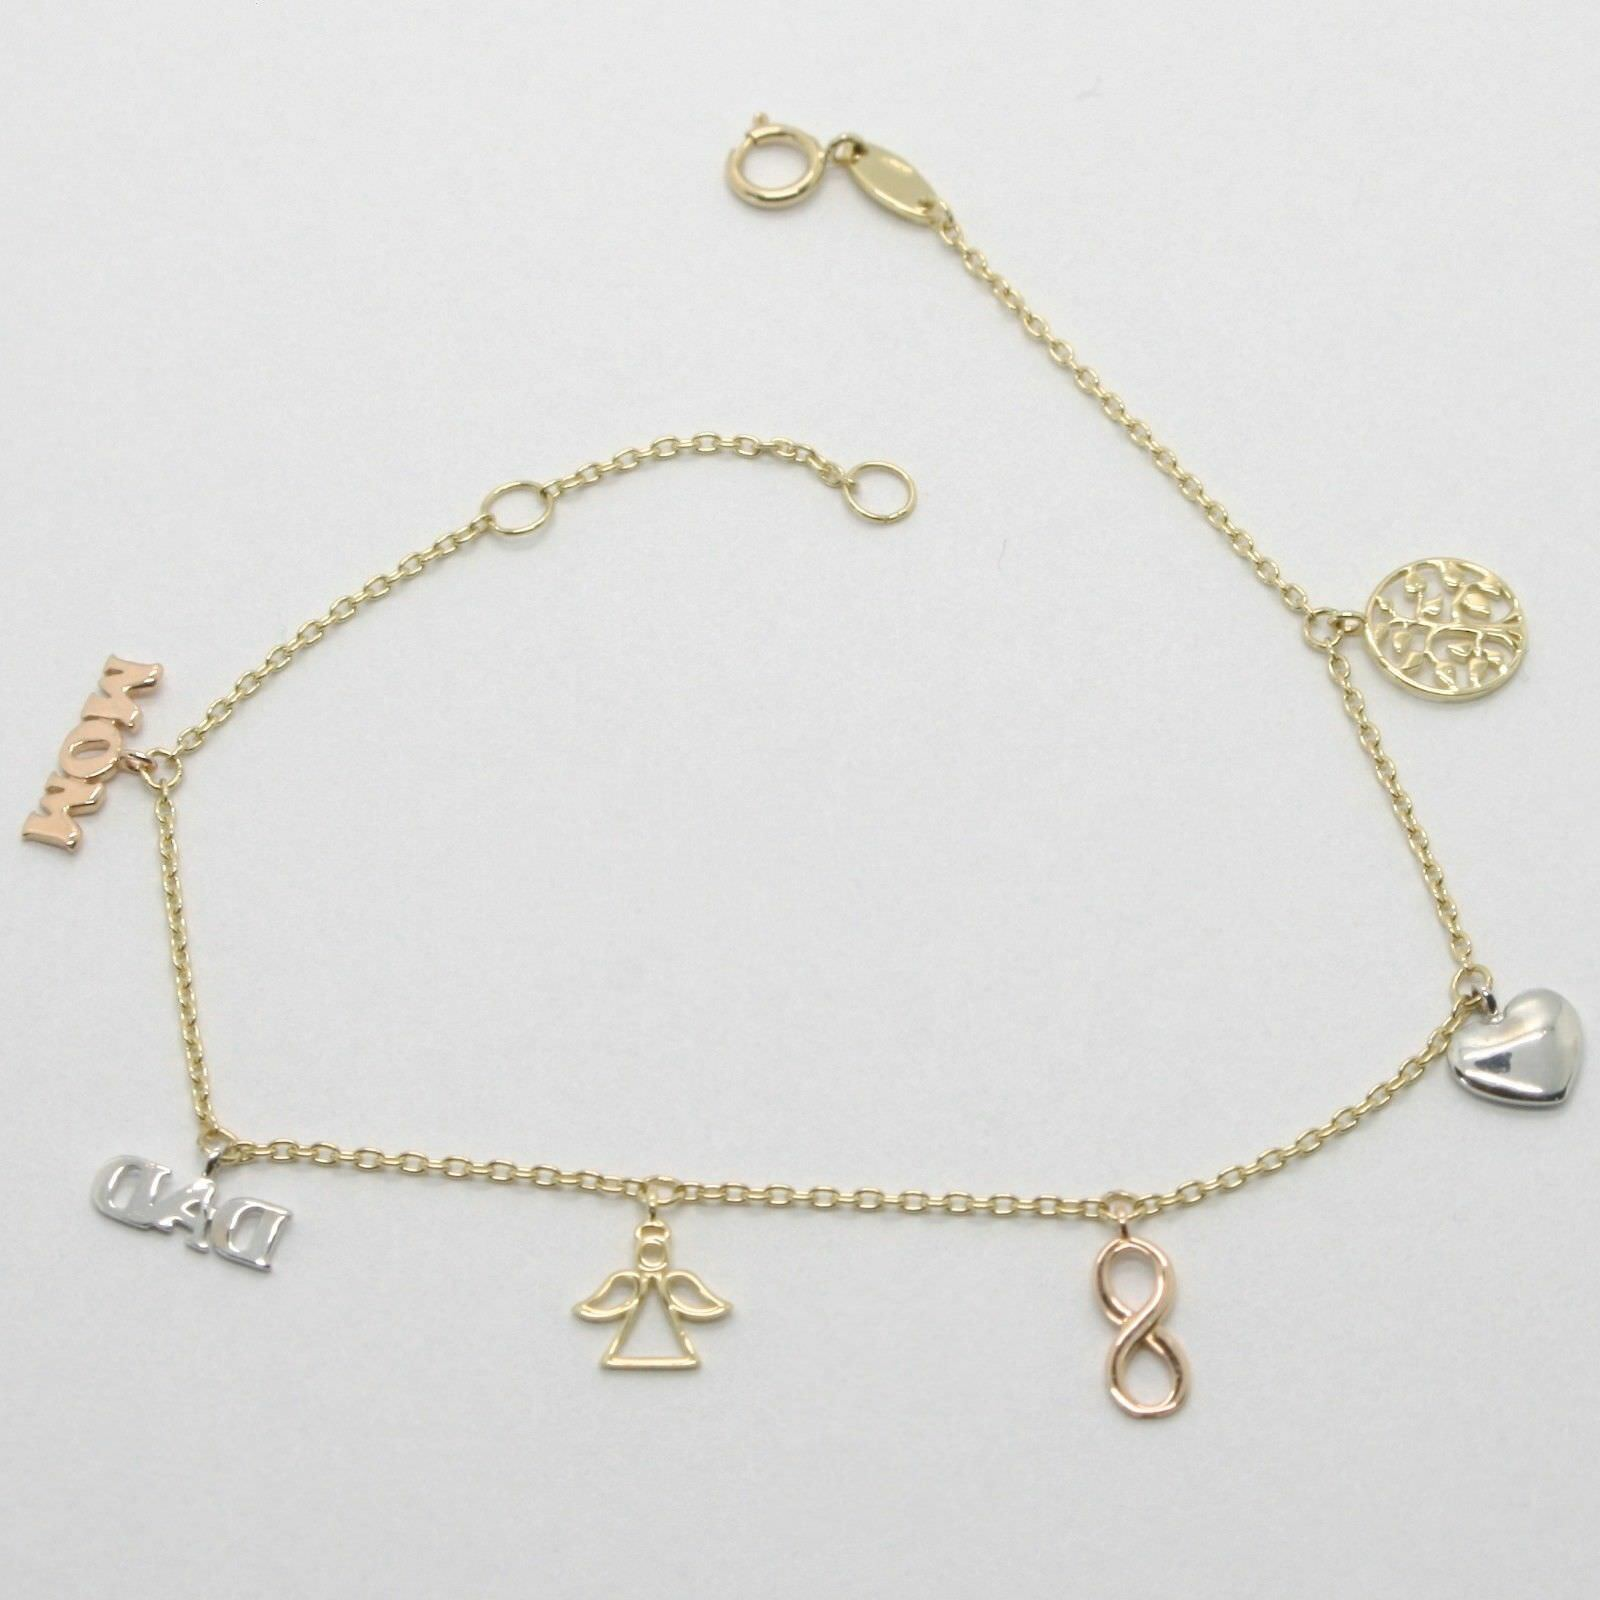 Primary image for Armband Gelbgold Weiß und Pink 18K 750 Anhänger Familie Made in Italien